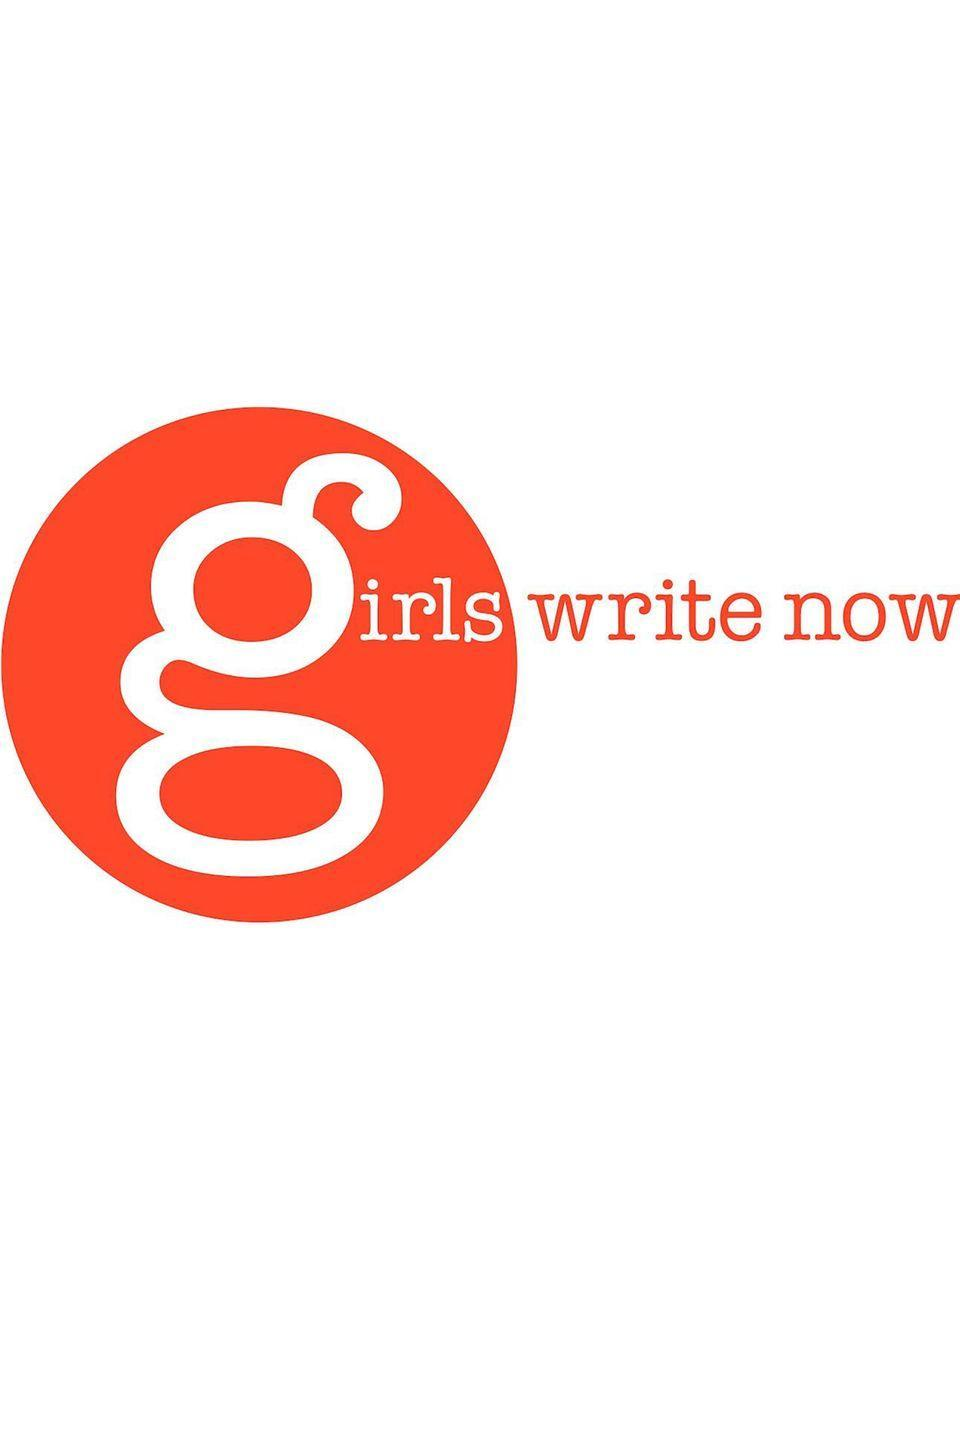 "<p><a class=""link rapid-noclick-resp"" href=""https://www.girlswritenow.org/"" rel=""nofollow noopener"" target=""_blank"" data-ylk=""slk:LEARN MORE"">LEARN MORE </a></p><p>""As a mentor for Girls Write Now, I can attest that this is a critical program to help underserved high school girls go farther with educational programs, networking, and one-on-one tutoring that helps them with college admissions, job applications, and writing for self-expression.""<em>—Olivia Martin, Style & Interiors Writer</em> </p>"